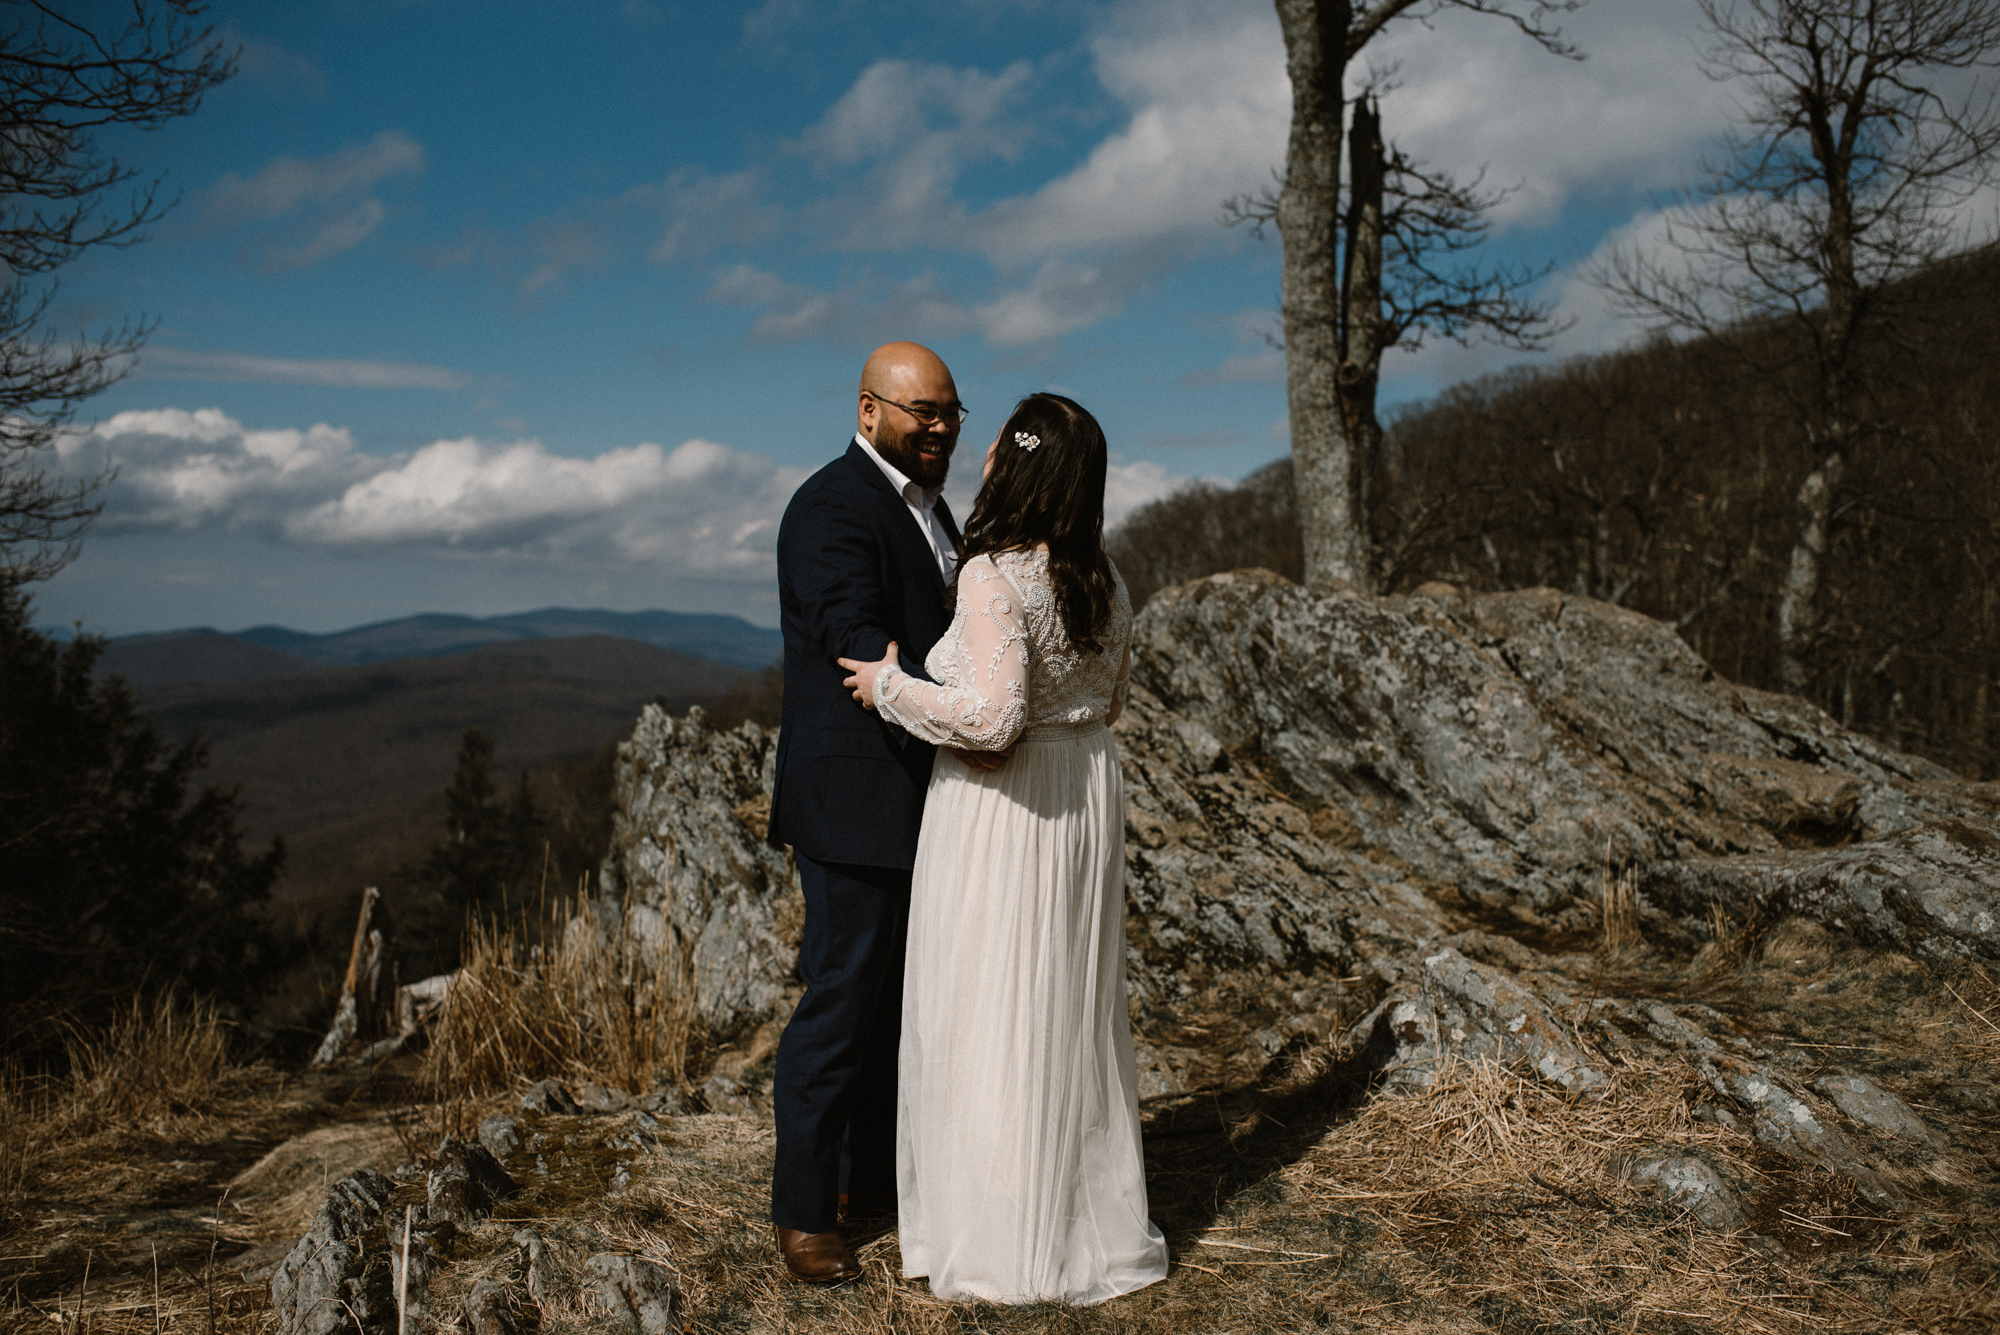 Emma and Jeddah - Intimate Luray Wedding - Shenandoah National Park Wedding - Adventure Elopement in Virginia - Shenandoah National Park Elopement_27.jpg